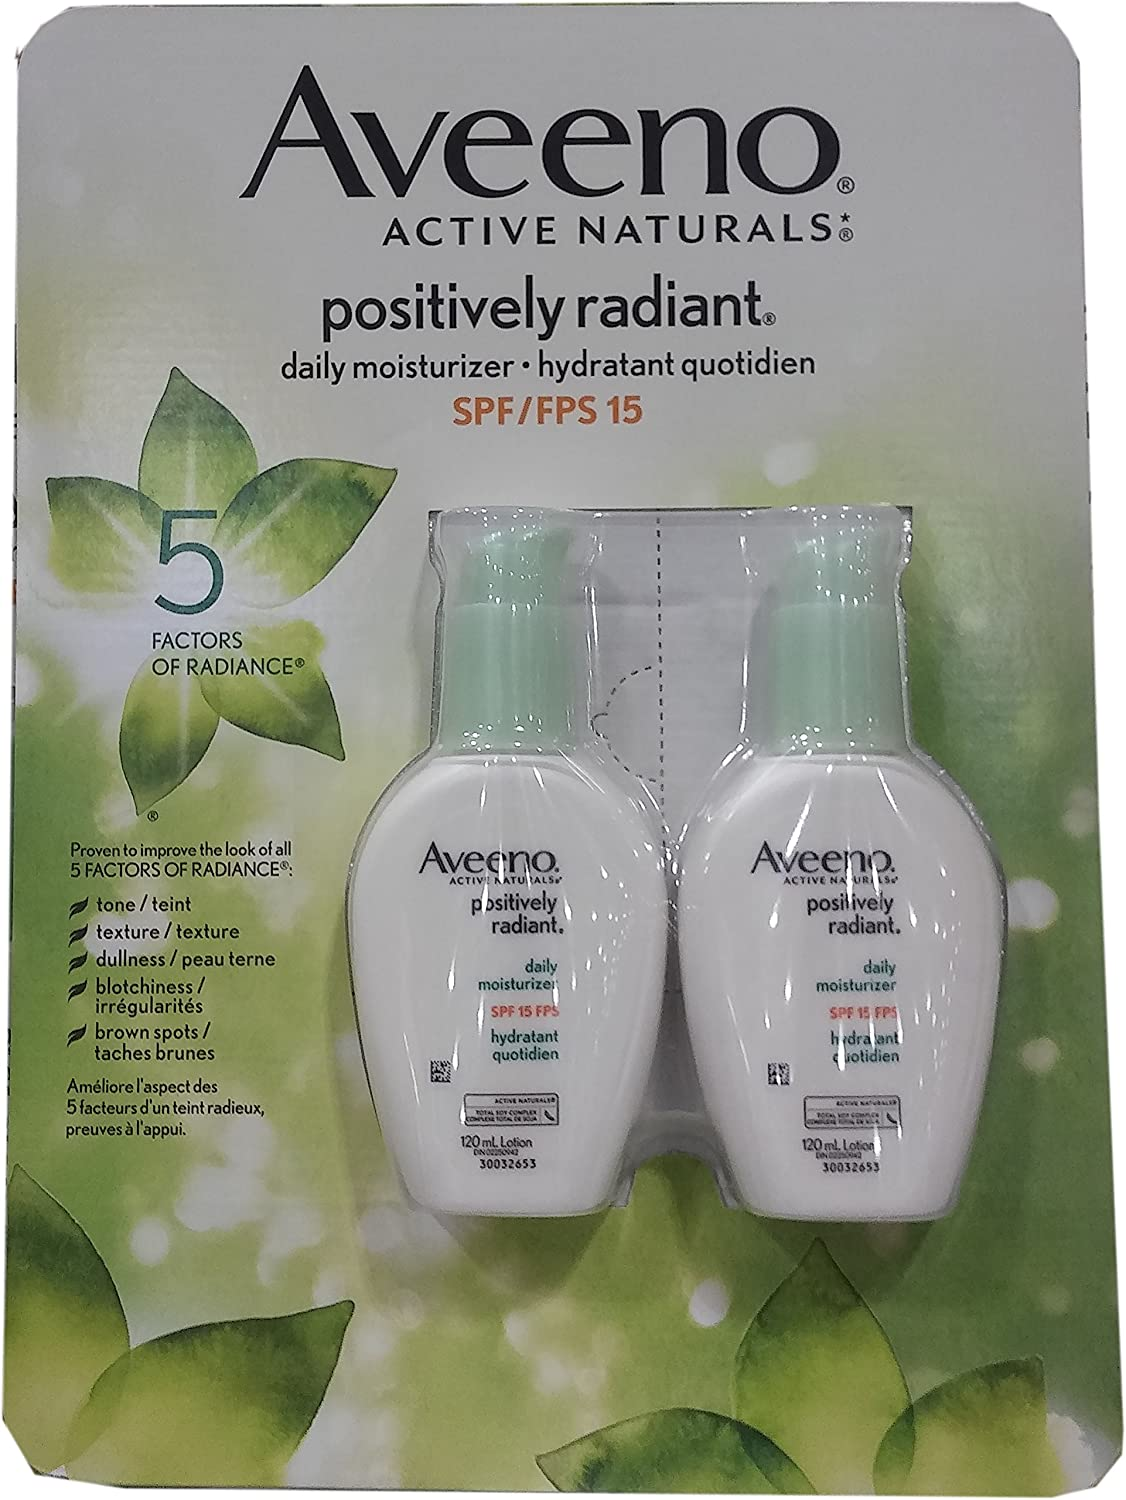 2 x Aveeno Active Naturals Positively Radiant daily moisturizer, SPF/FPS 15, 120ml